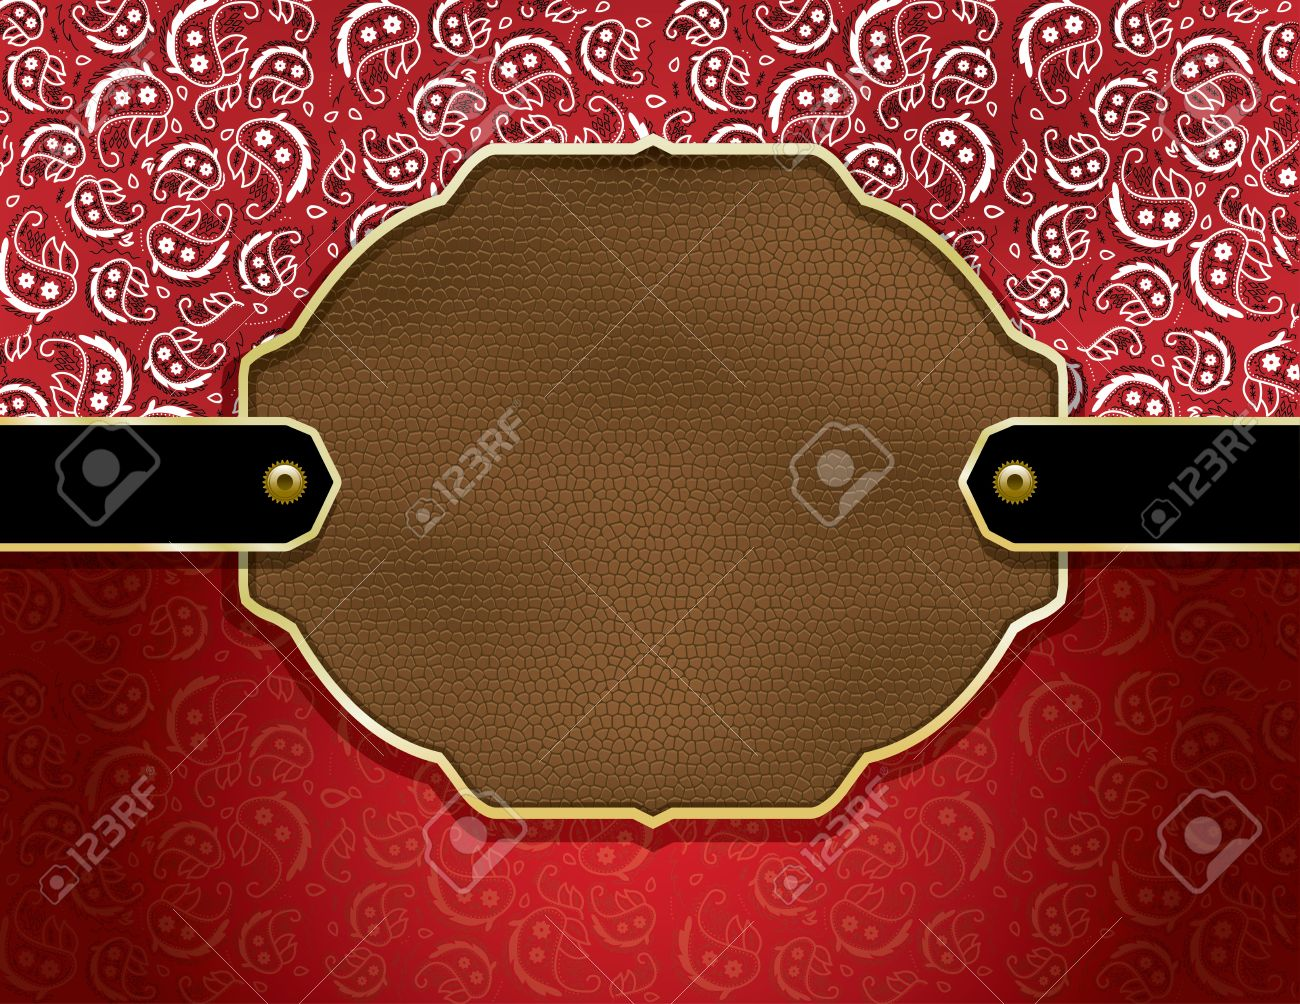 Background Containing A Red Paisley Handkerchief Pattern And 1300x1004